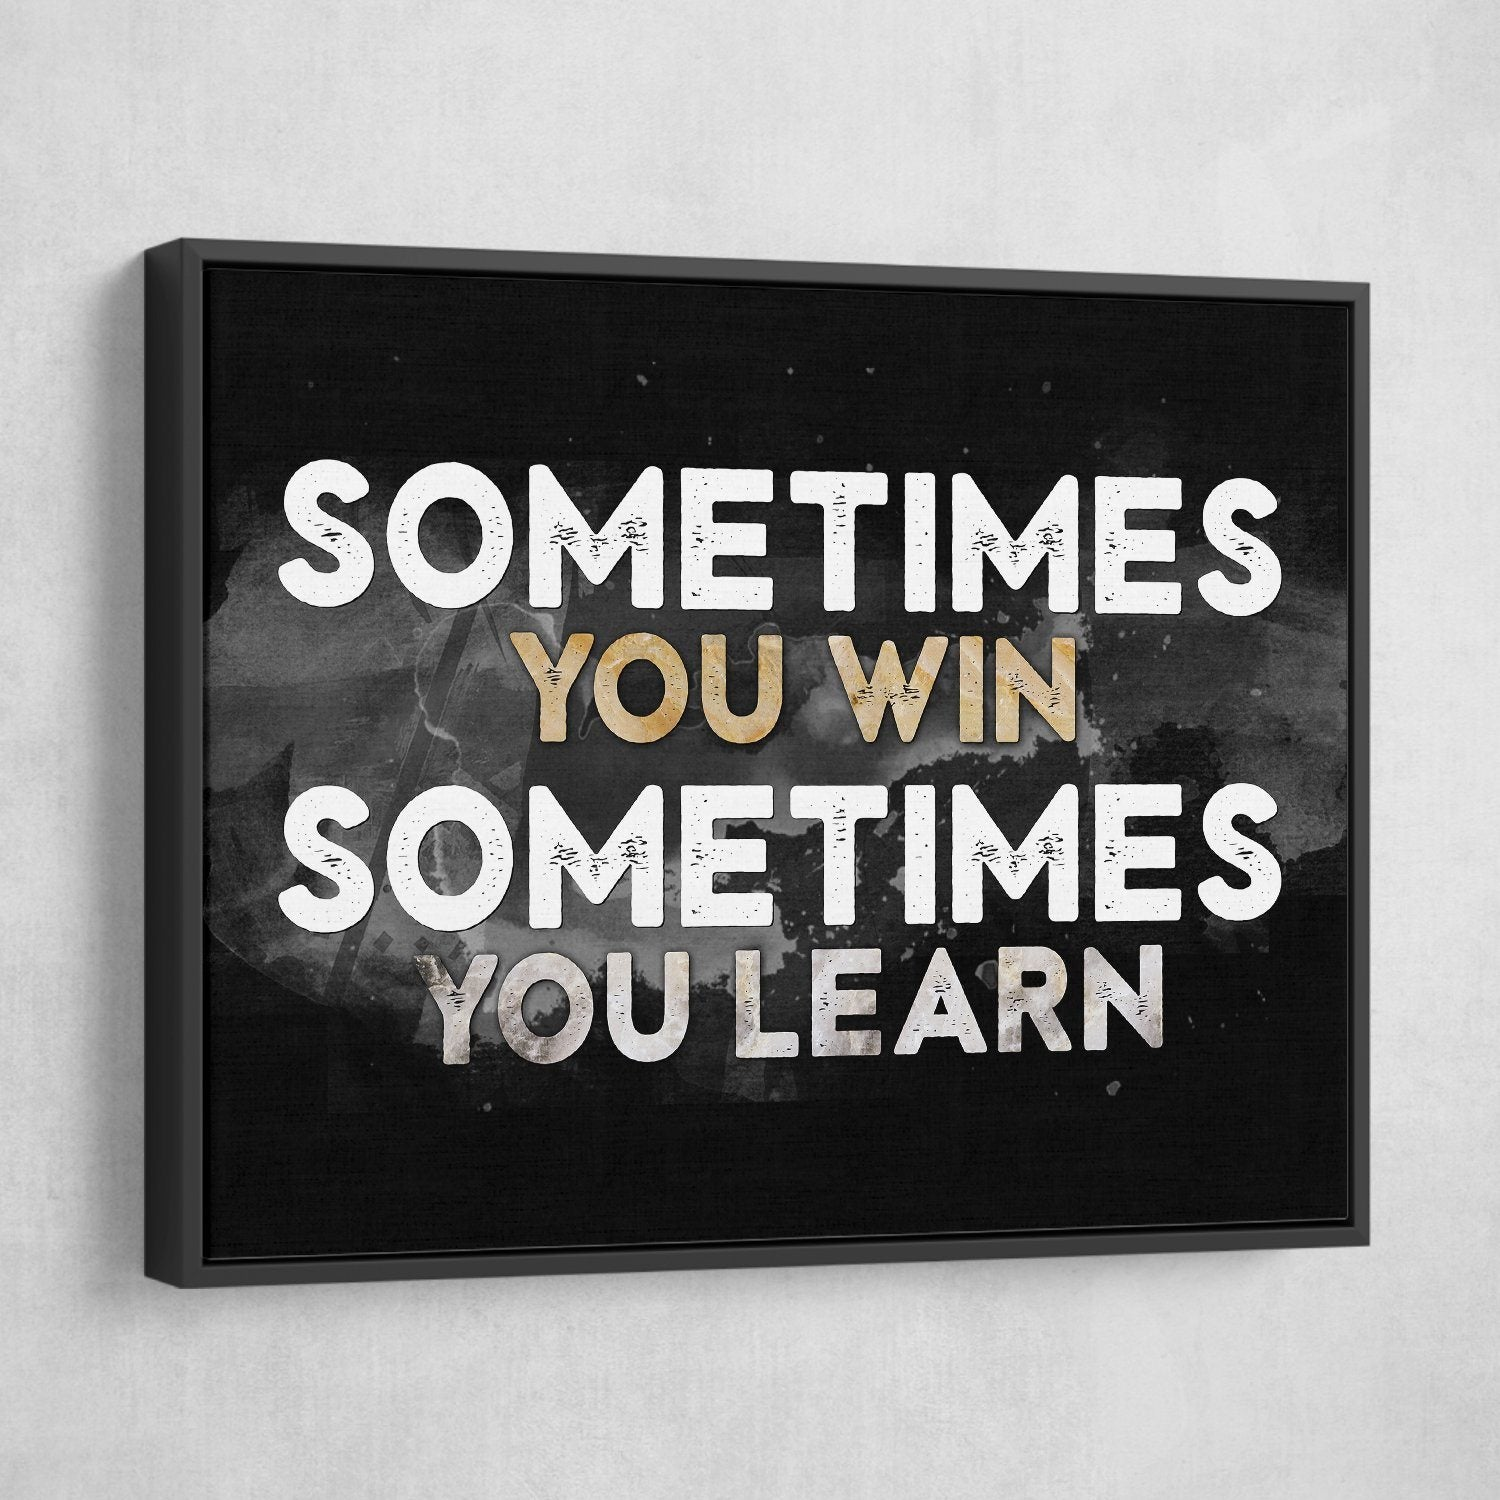 Sometimes you win sometimes you learn wall art